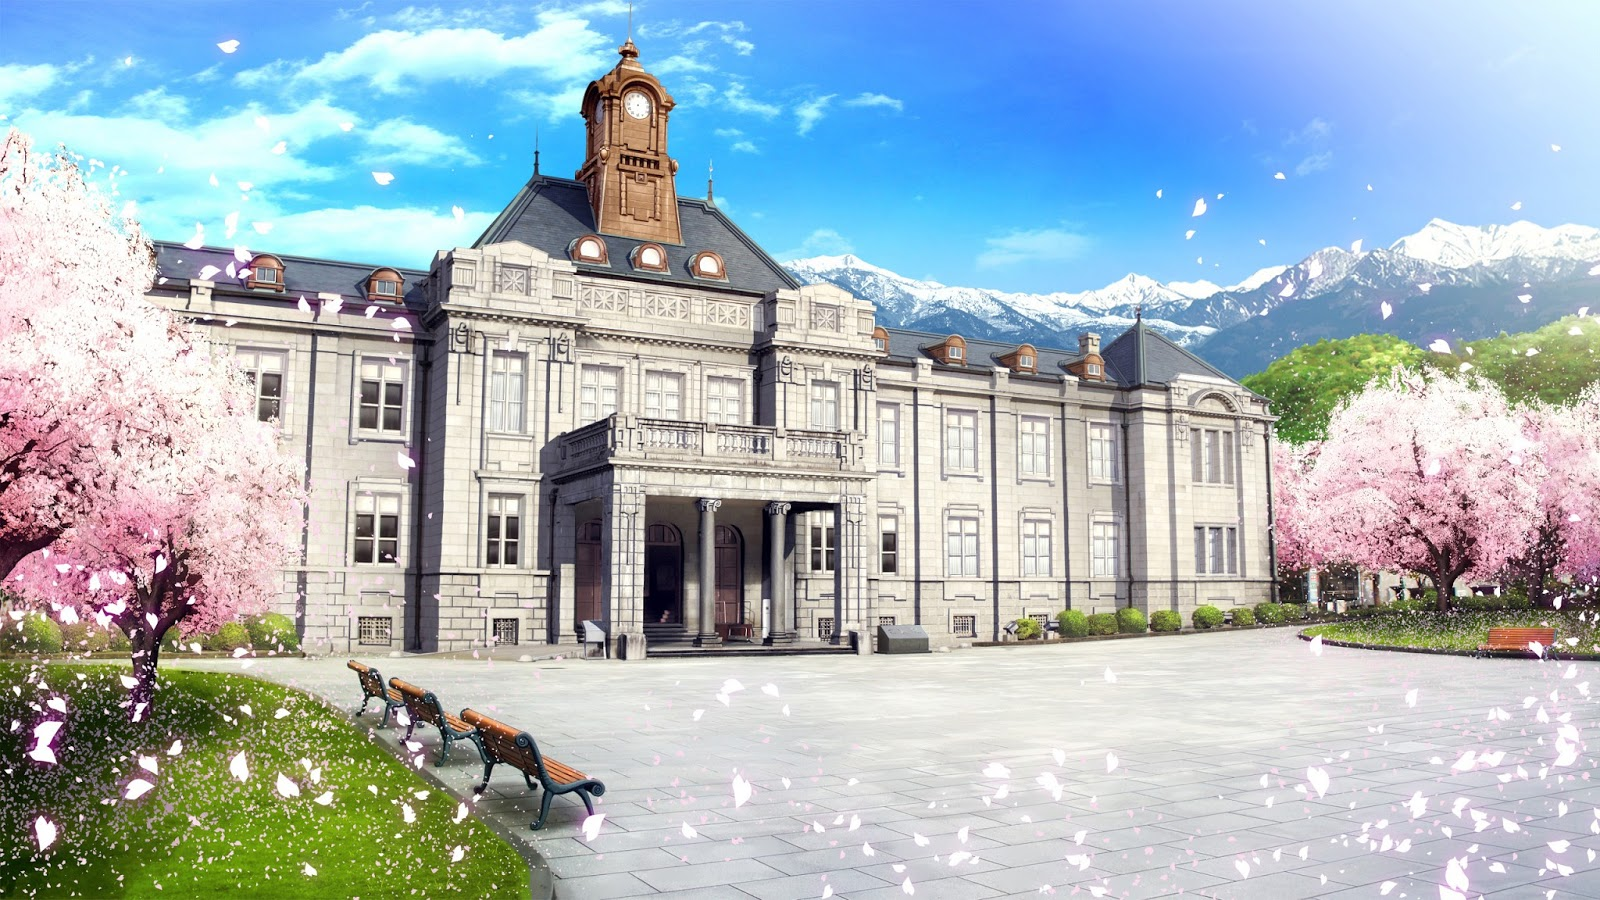 Pictures Of Home Office Library Anime Landscape Palace Anime Background